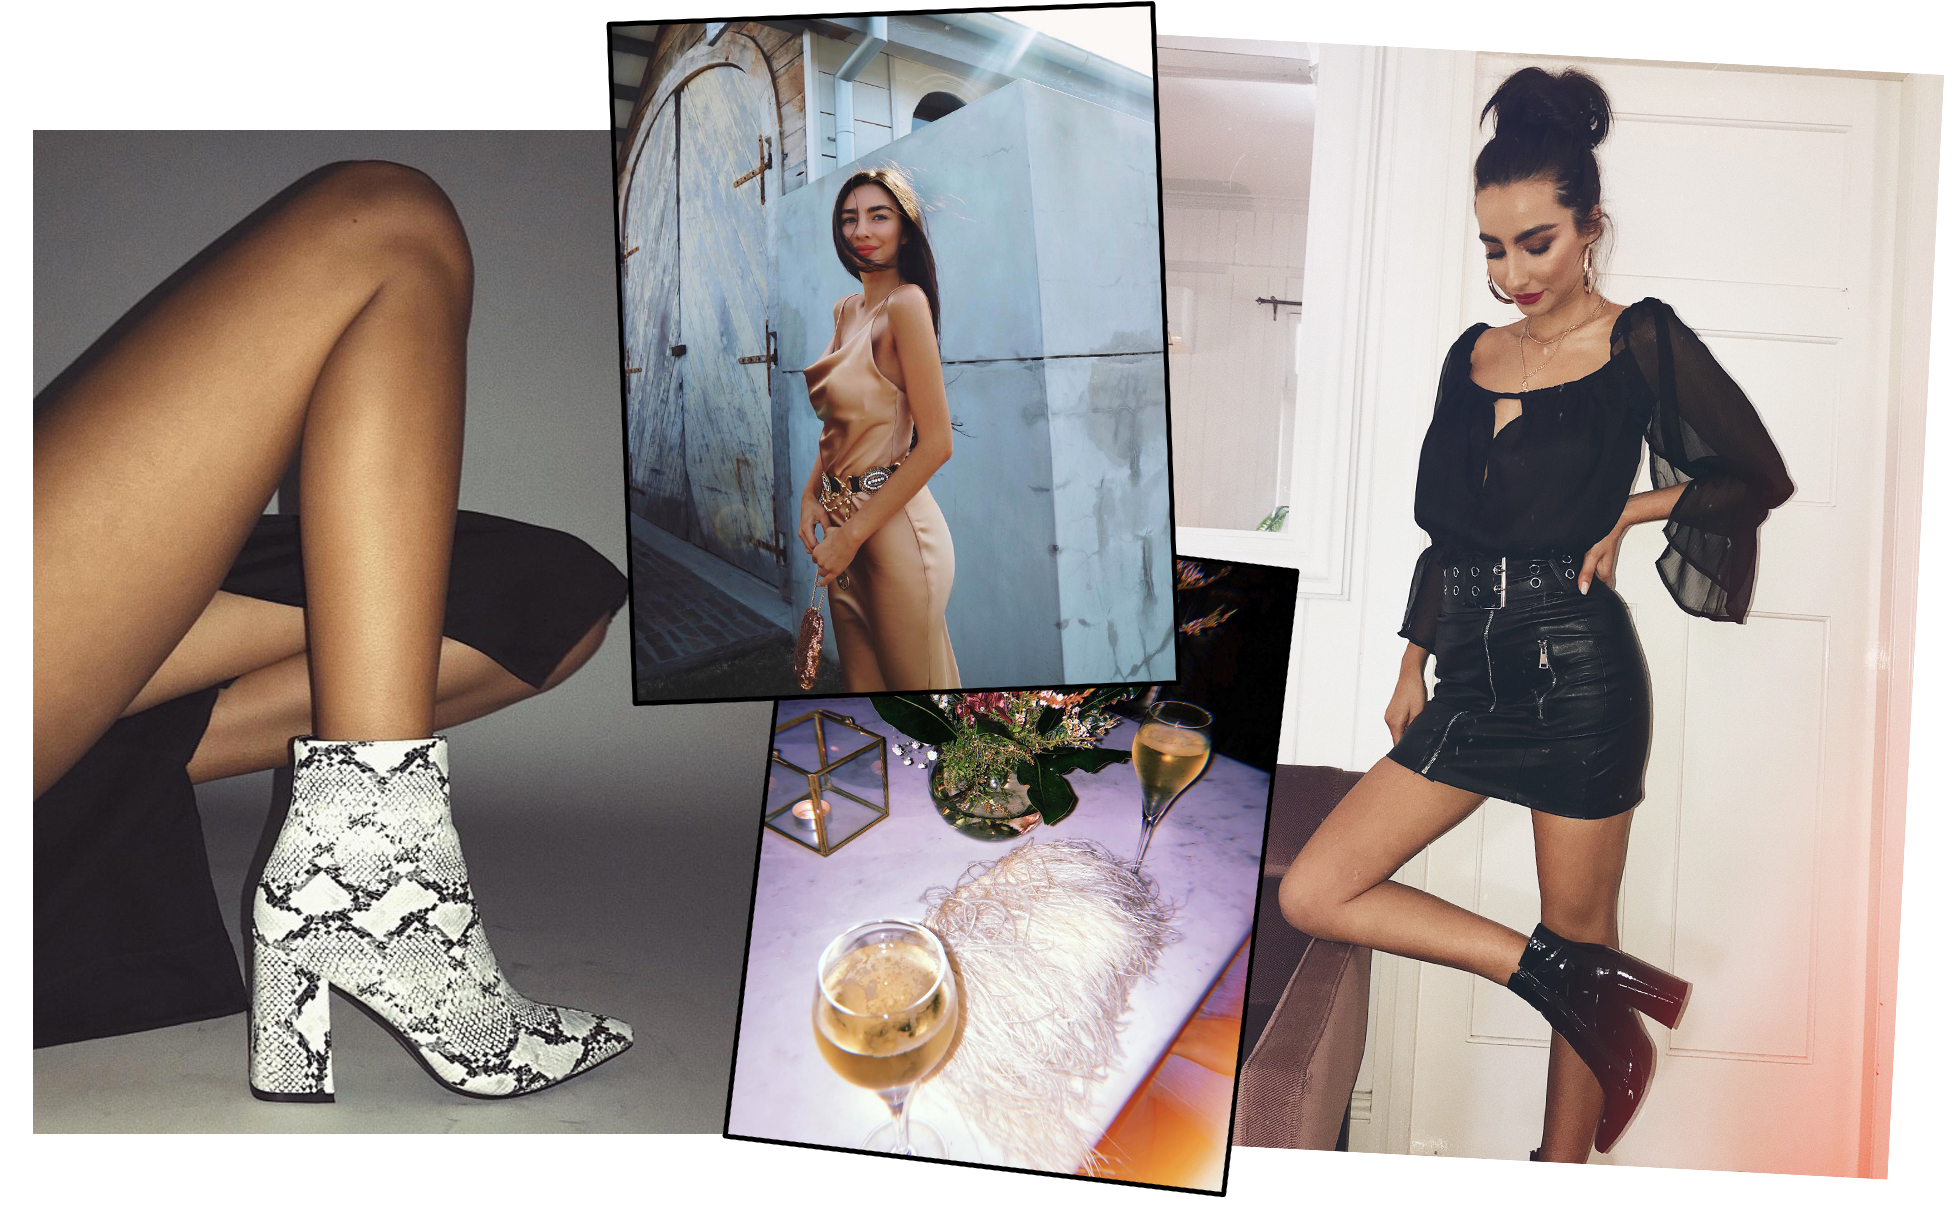 THERAPY SNAKE ALLOY BOOTS  // BETTA VANORE MAXI DRESS CHAMPAGNE  // LIONESS RICHIE OFF SHOULDER TOP  //  T-BIRD MINI SKIRT